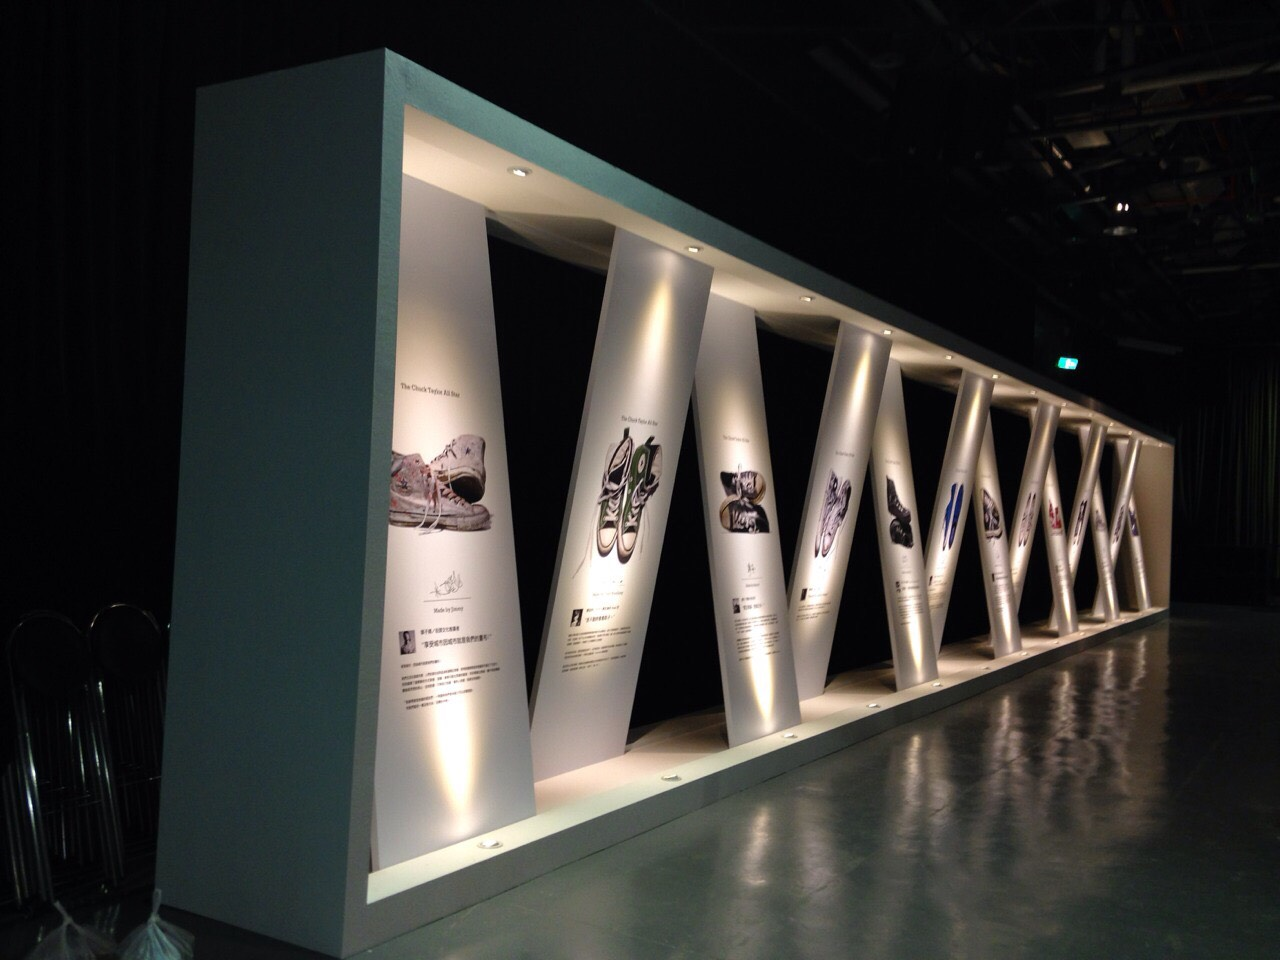 Exhibition Stand Design Articles : Trade show marketing ideas wholesale resources and guides